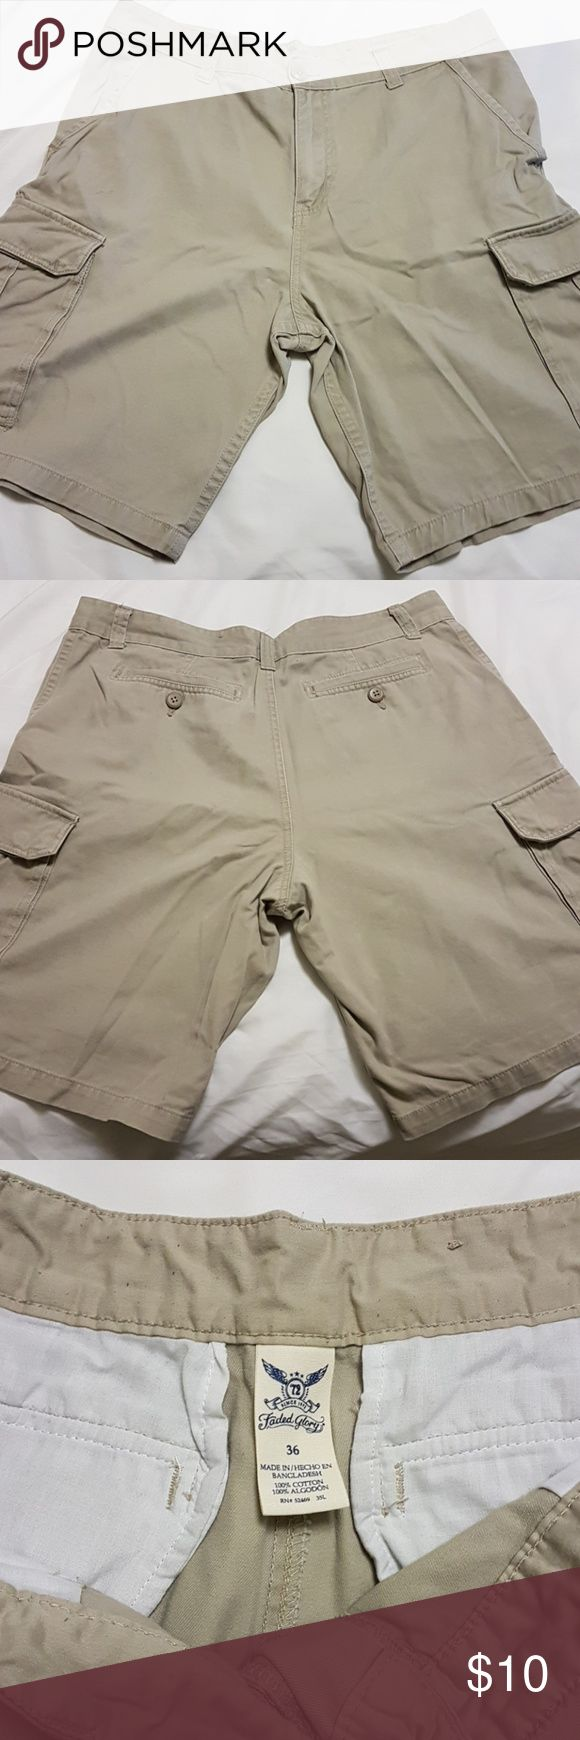 Men's Shorts Mens Shorts Bundle. One pair has a small rip by the belt hole (pictured). All for $10. Smoke Free Home Faded Glory Shorts Cargo